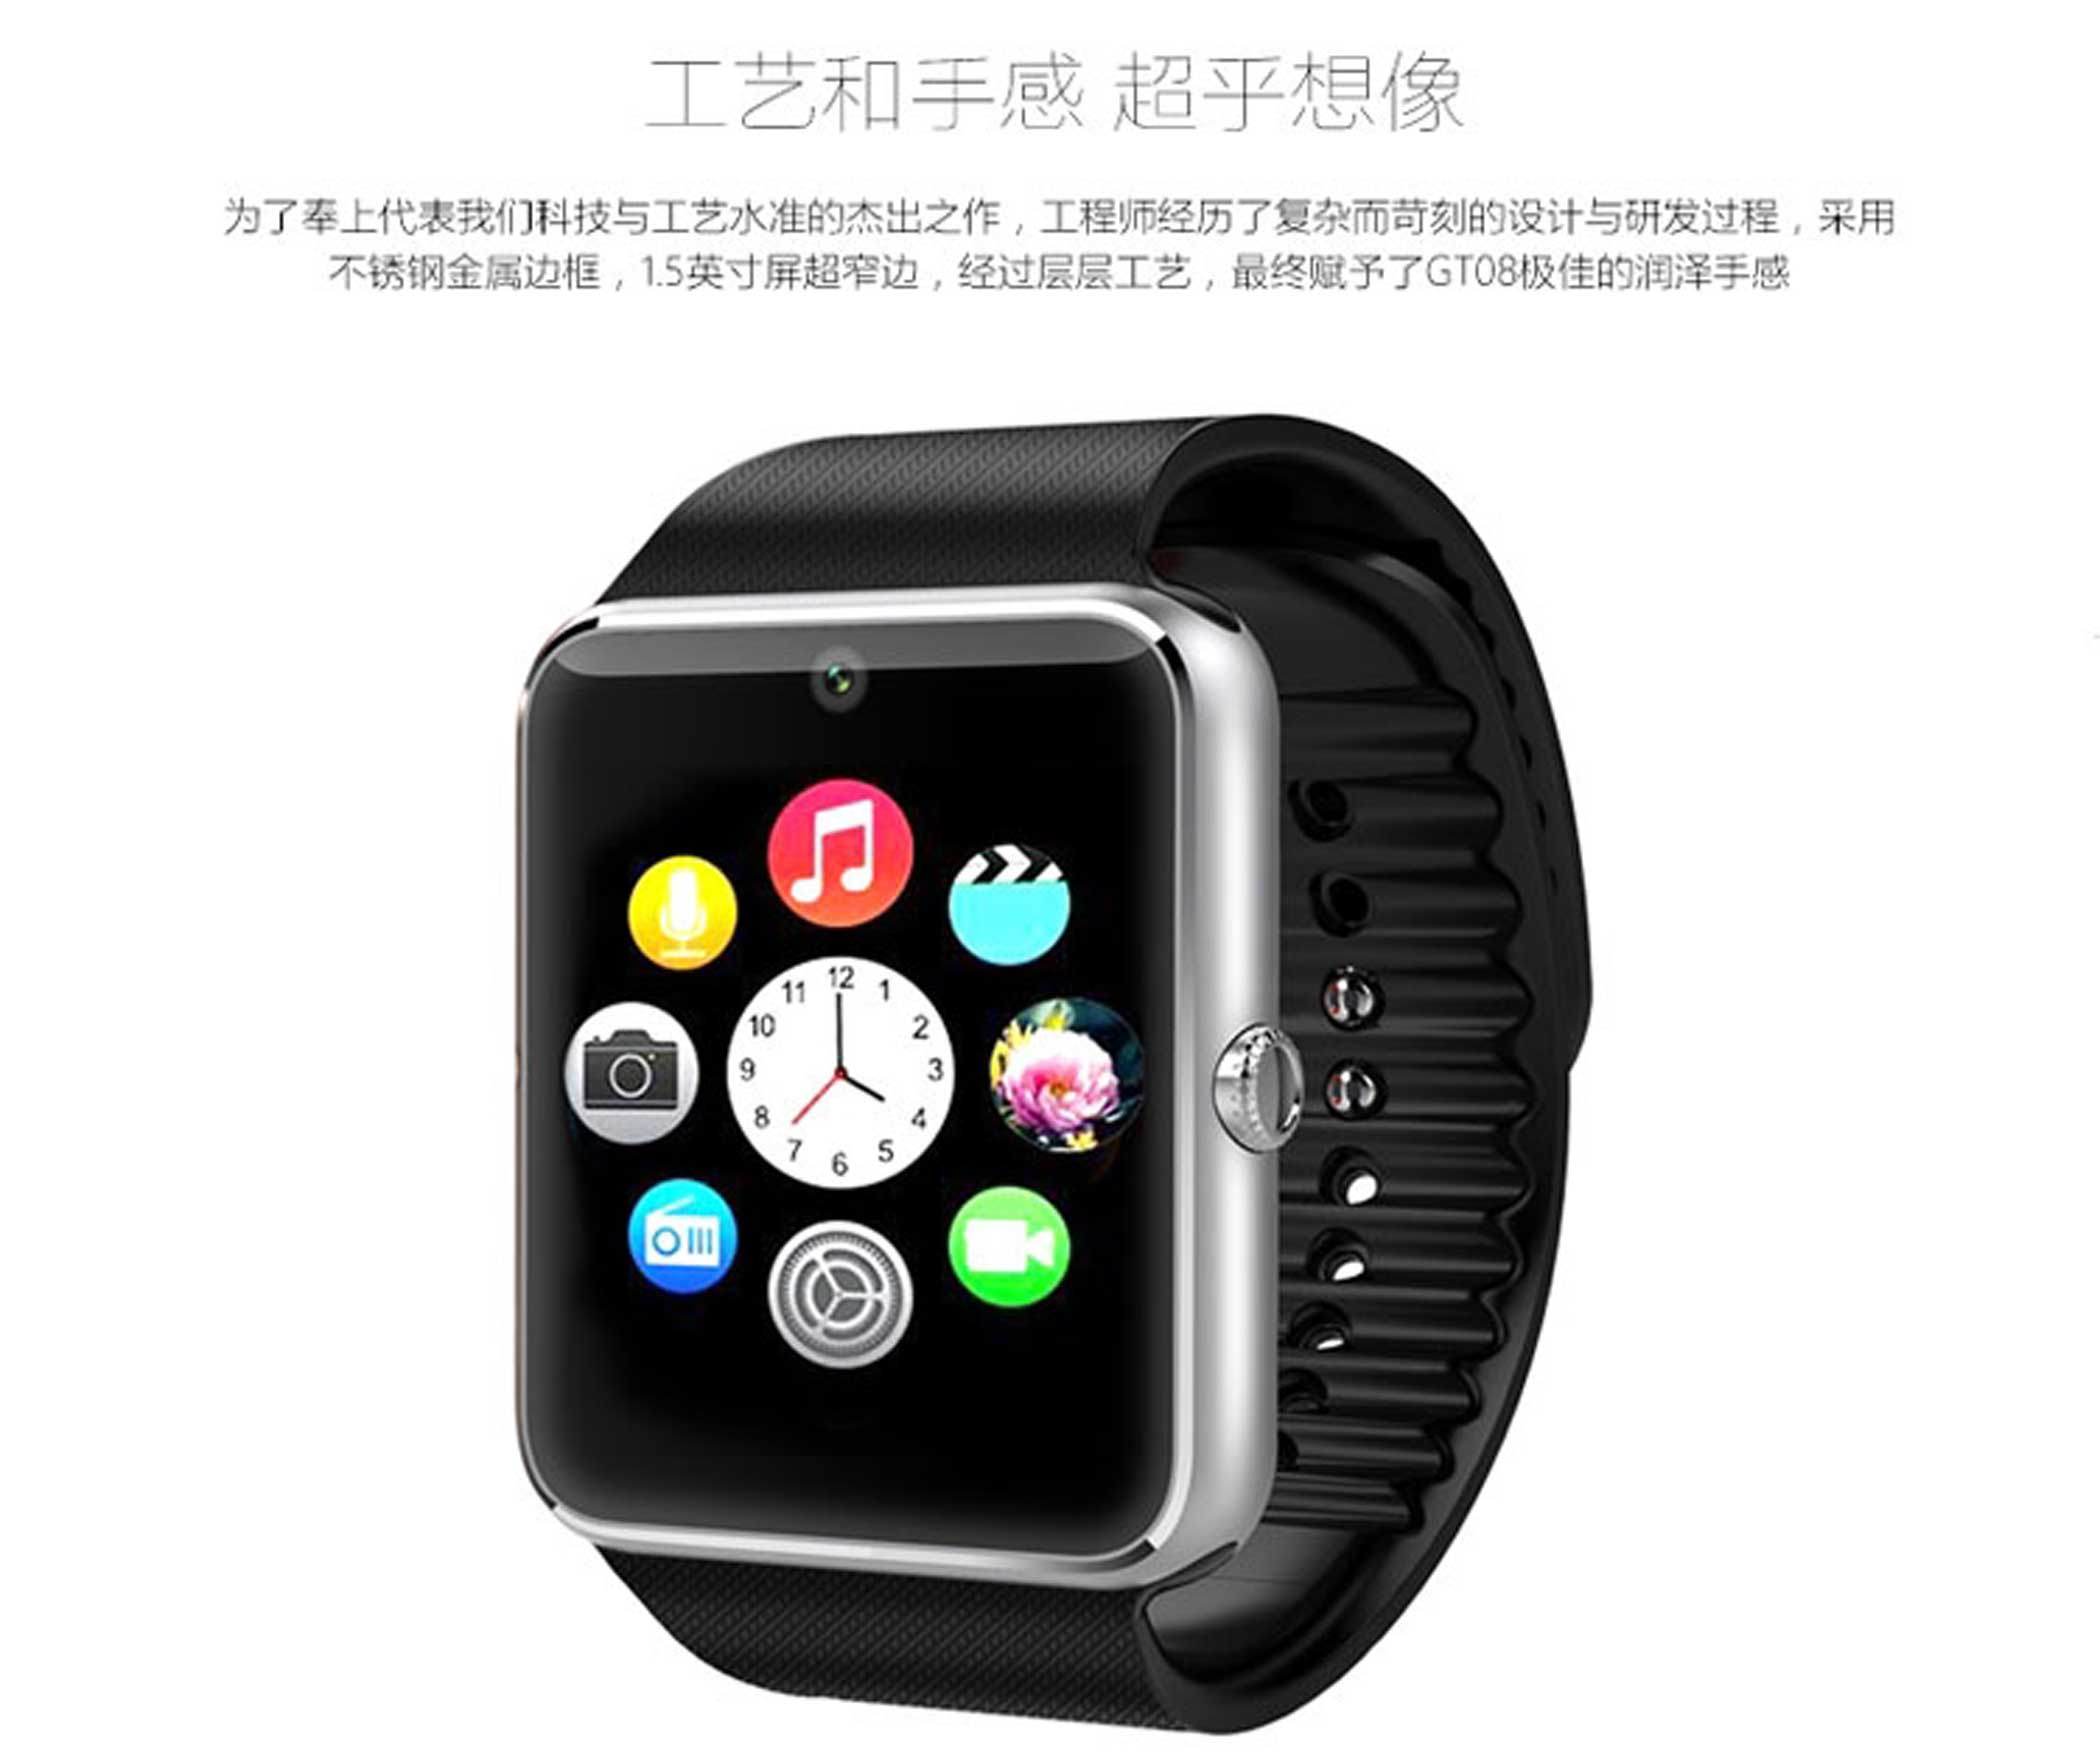 An ad for Wearable Device Boutiques' Apple I-Xiaomi wearable watch with Bluetooth. The 4th and 5th generation watch has multi-functions, including photos and music. Prices range from $30 to $78.